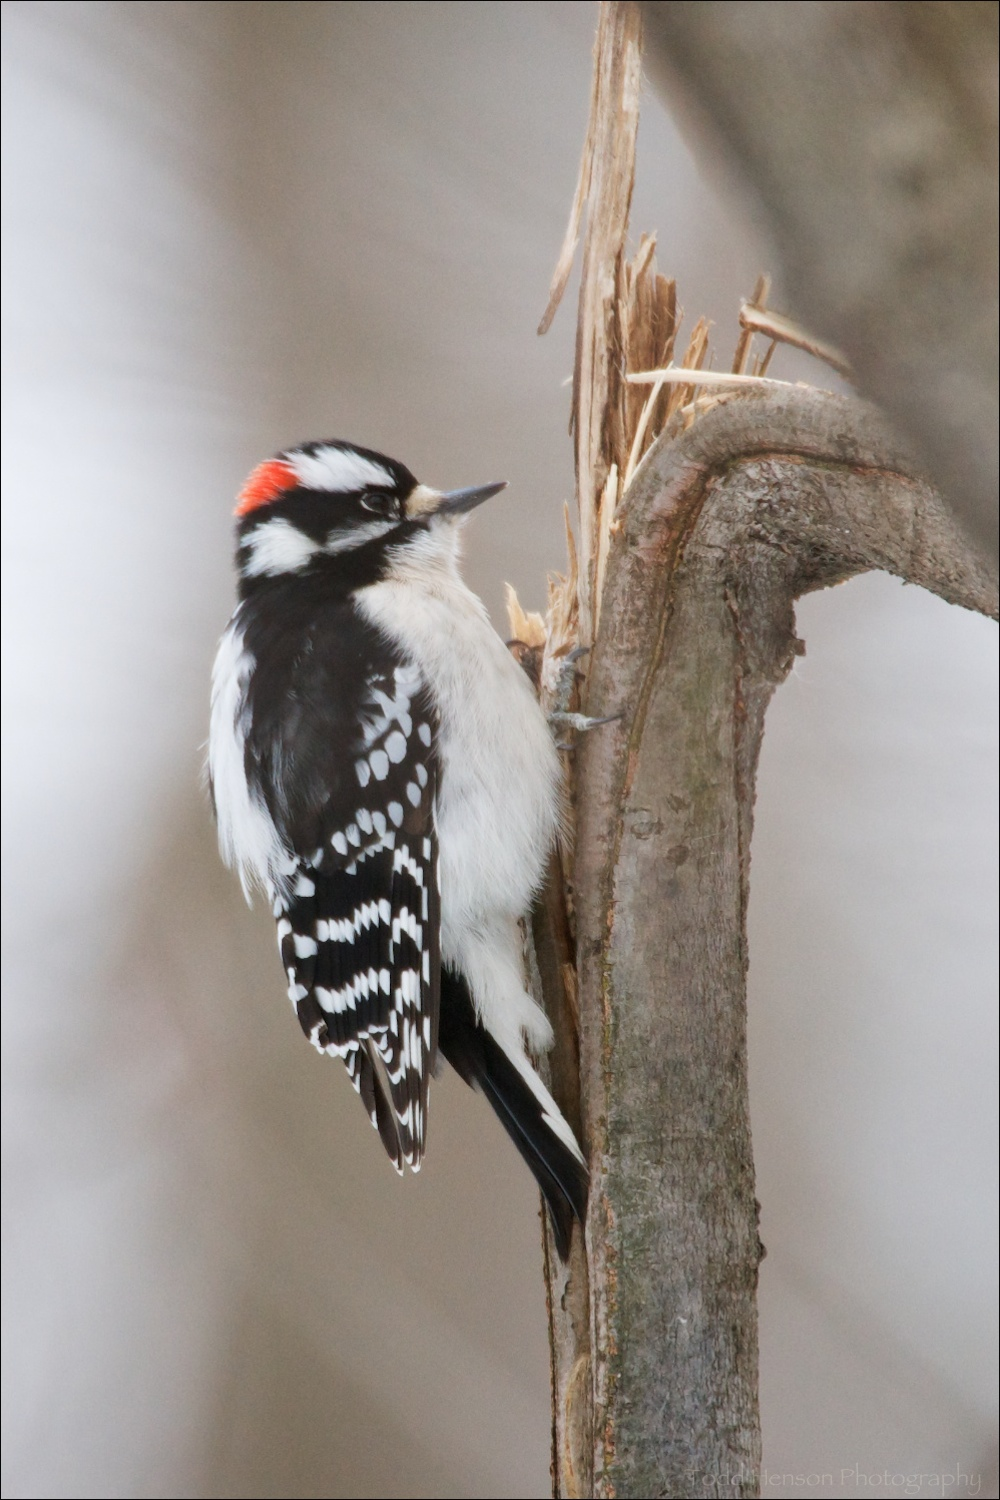 Male Downy Woodpecker taking advantage of a cracked tree